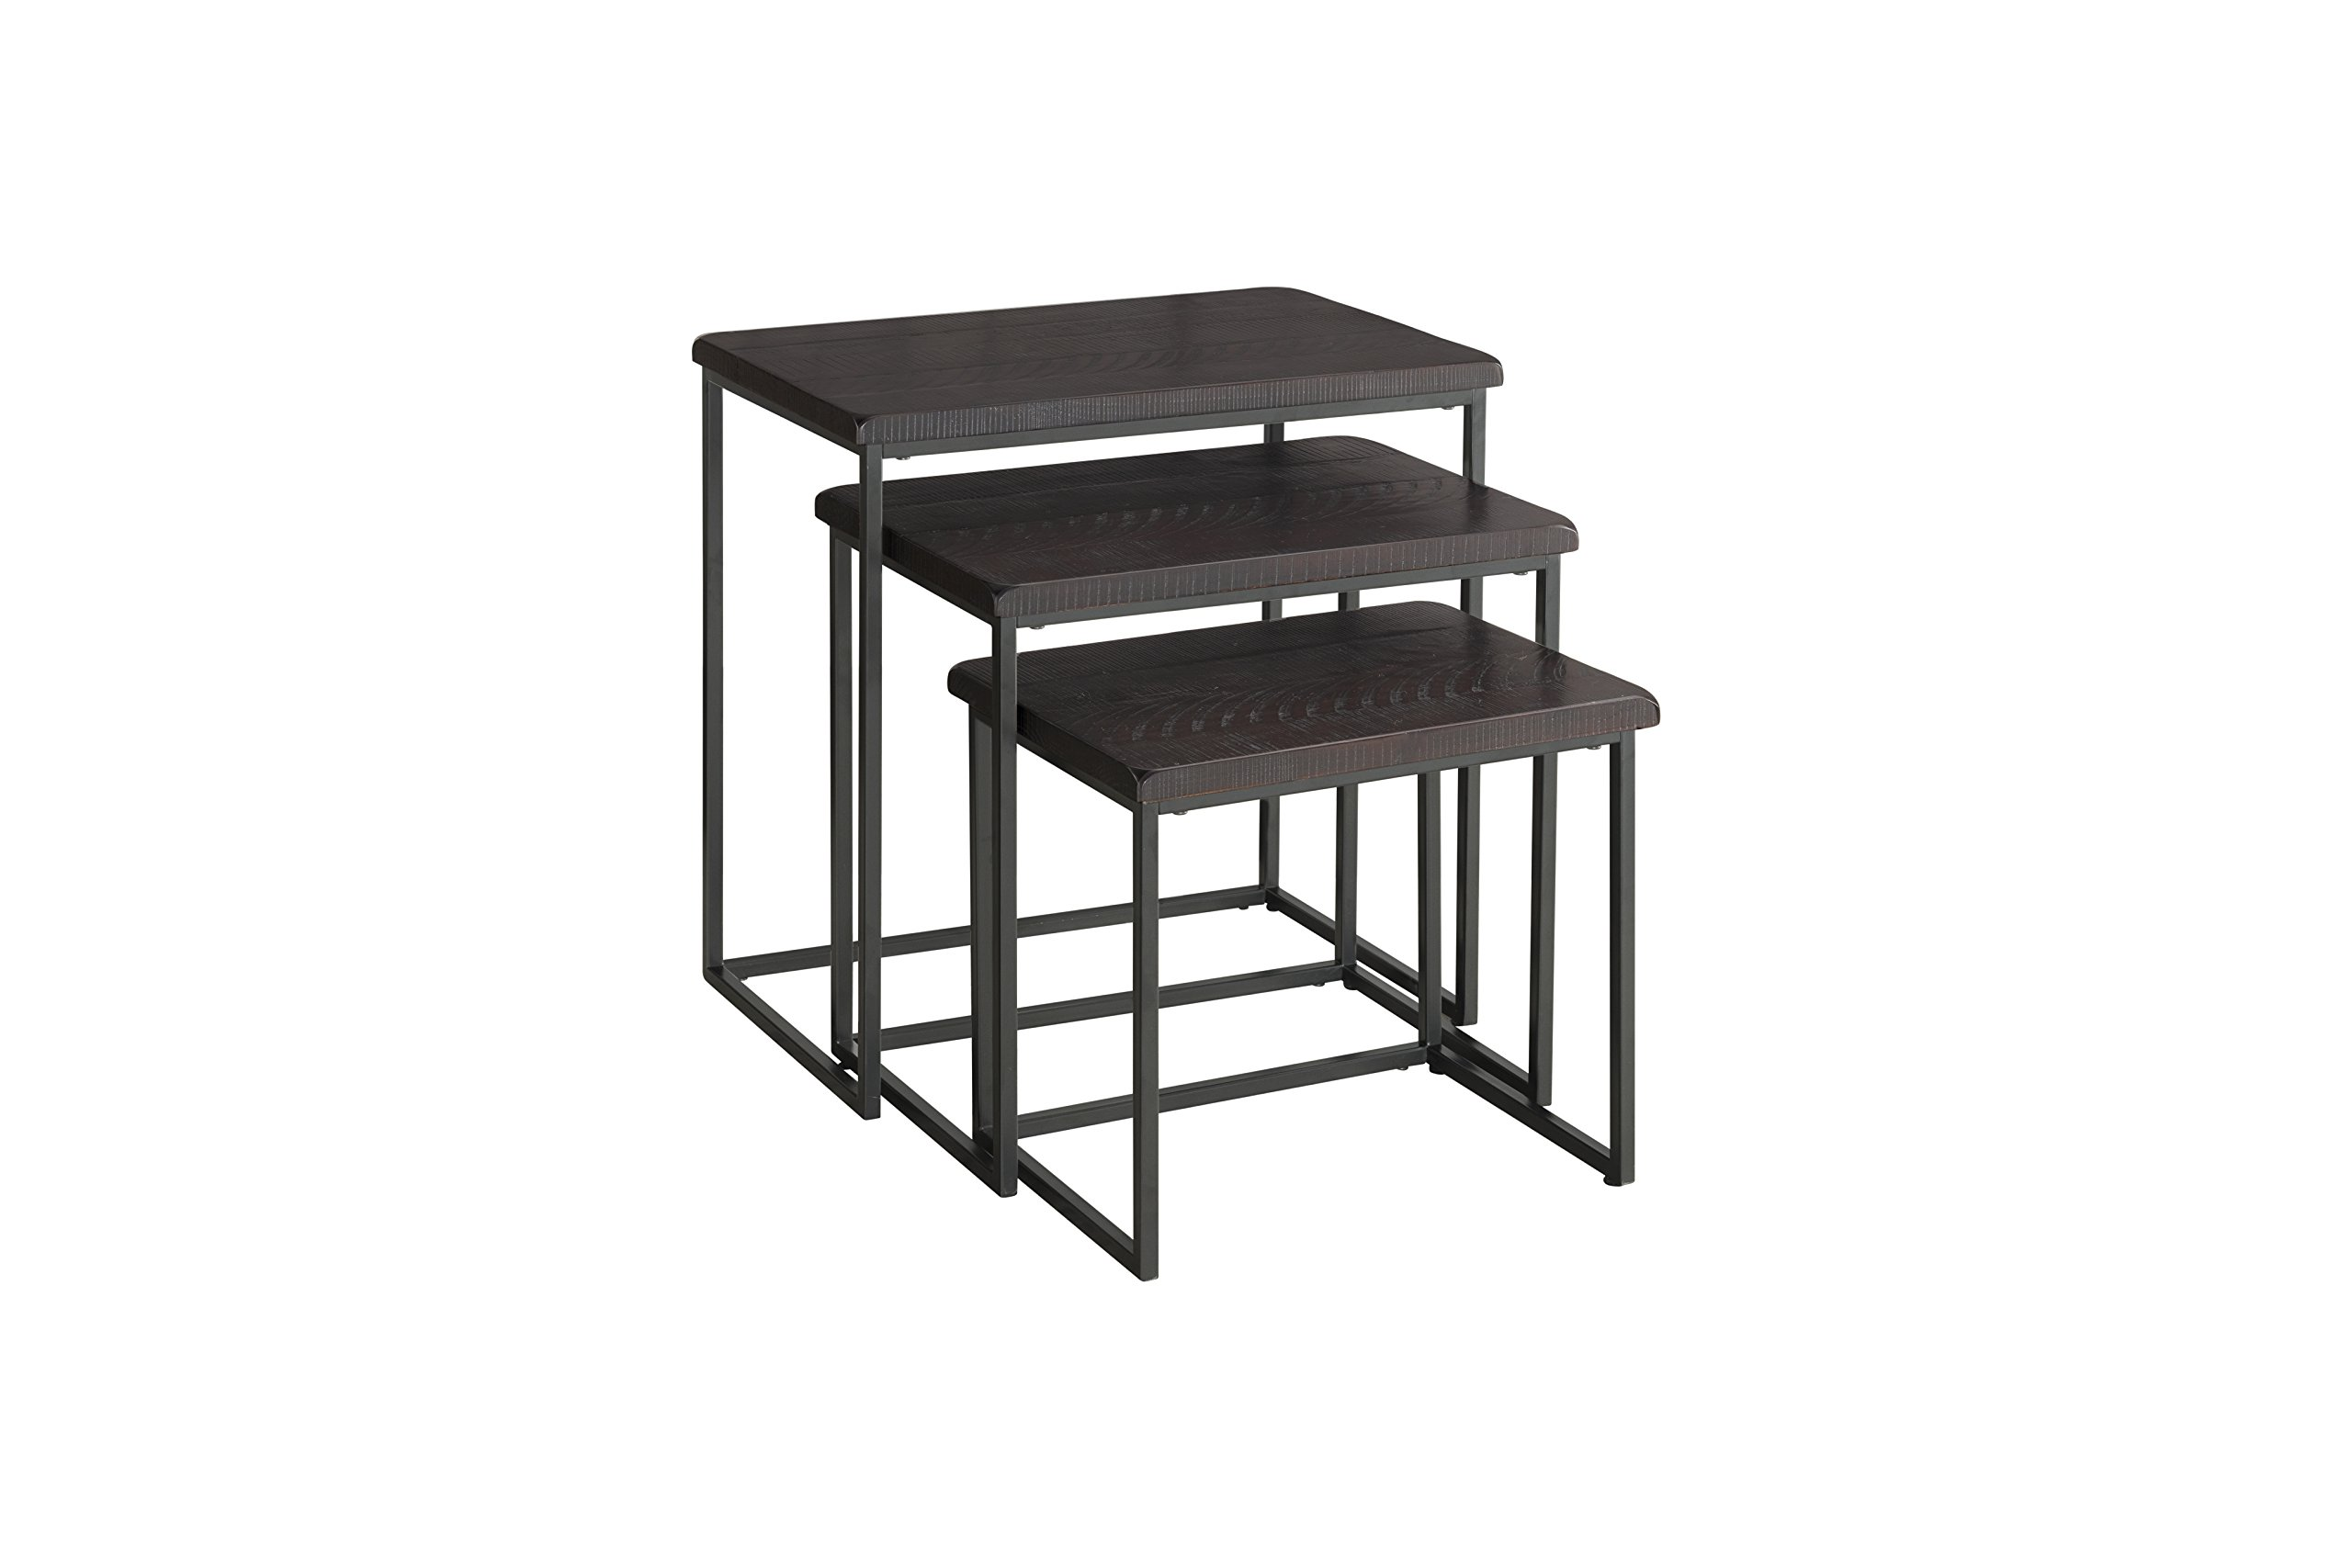 Martin Svensson Home 890558 Rustic Collection Solid Wood & Metal 3 Piece Nesting Table, Espresso by Martin Svensson Home